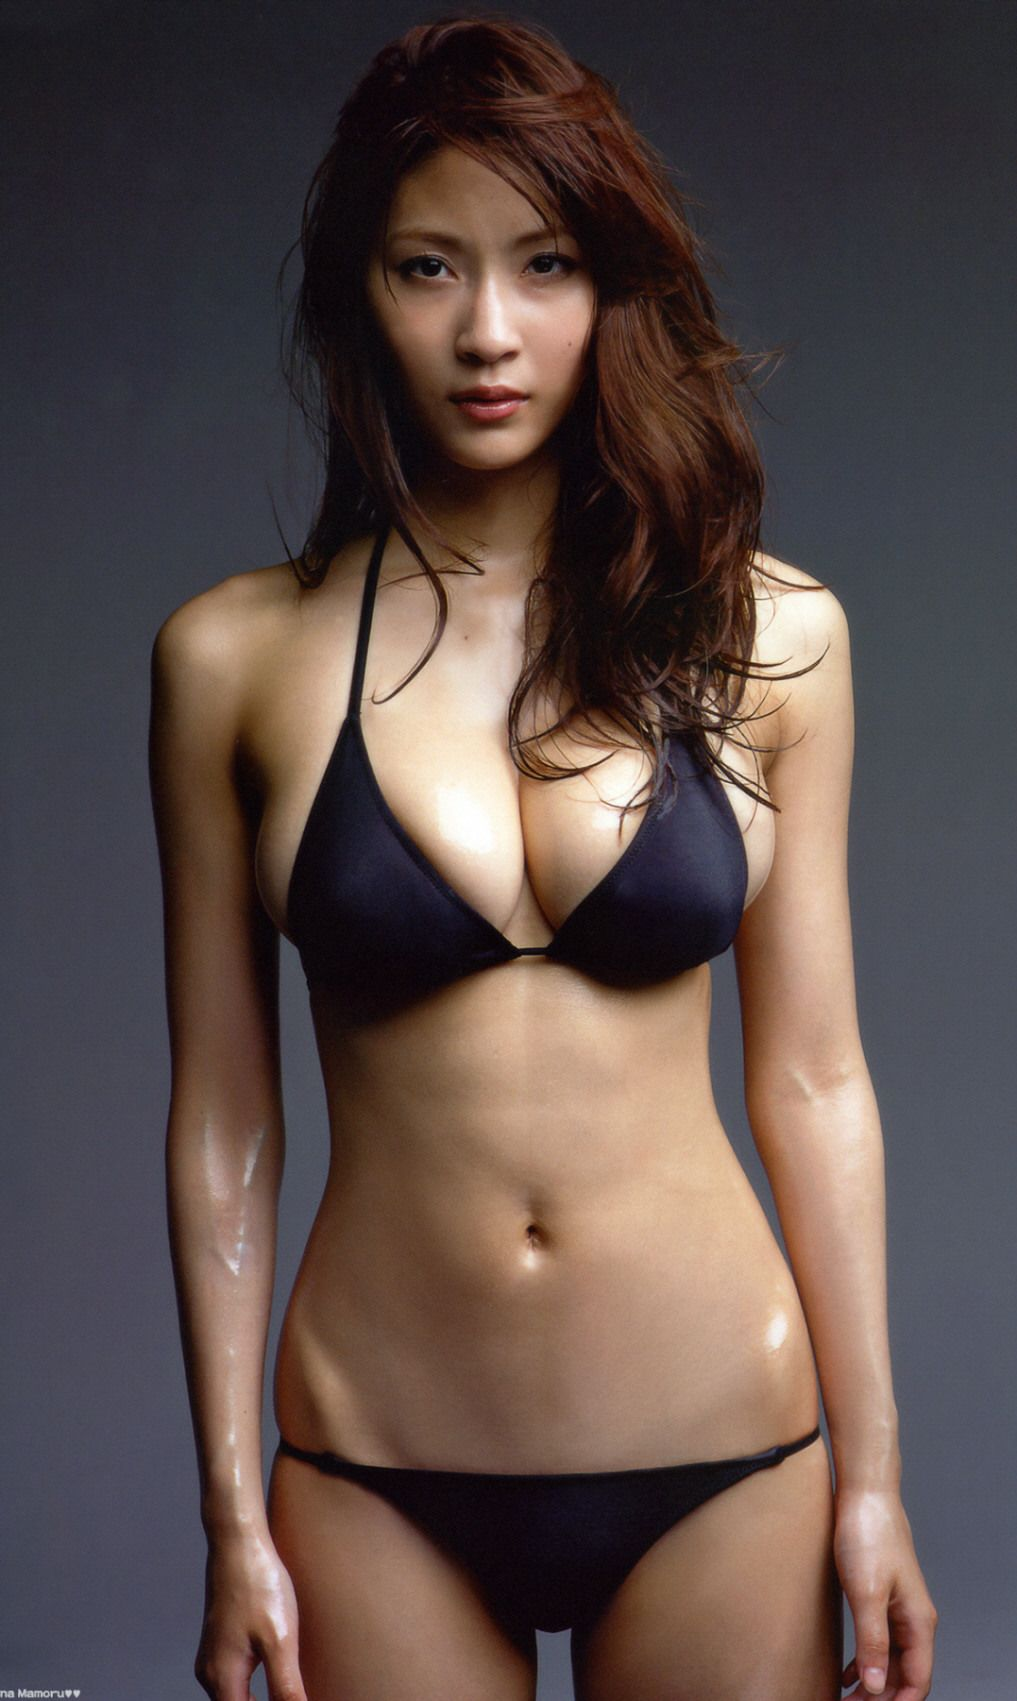 Beautiful asian models in bikinis excellent words